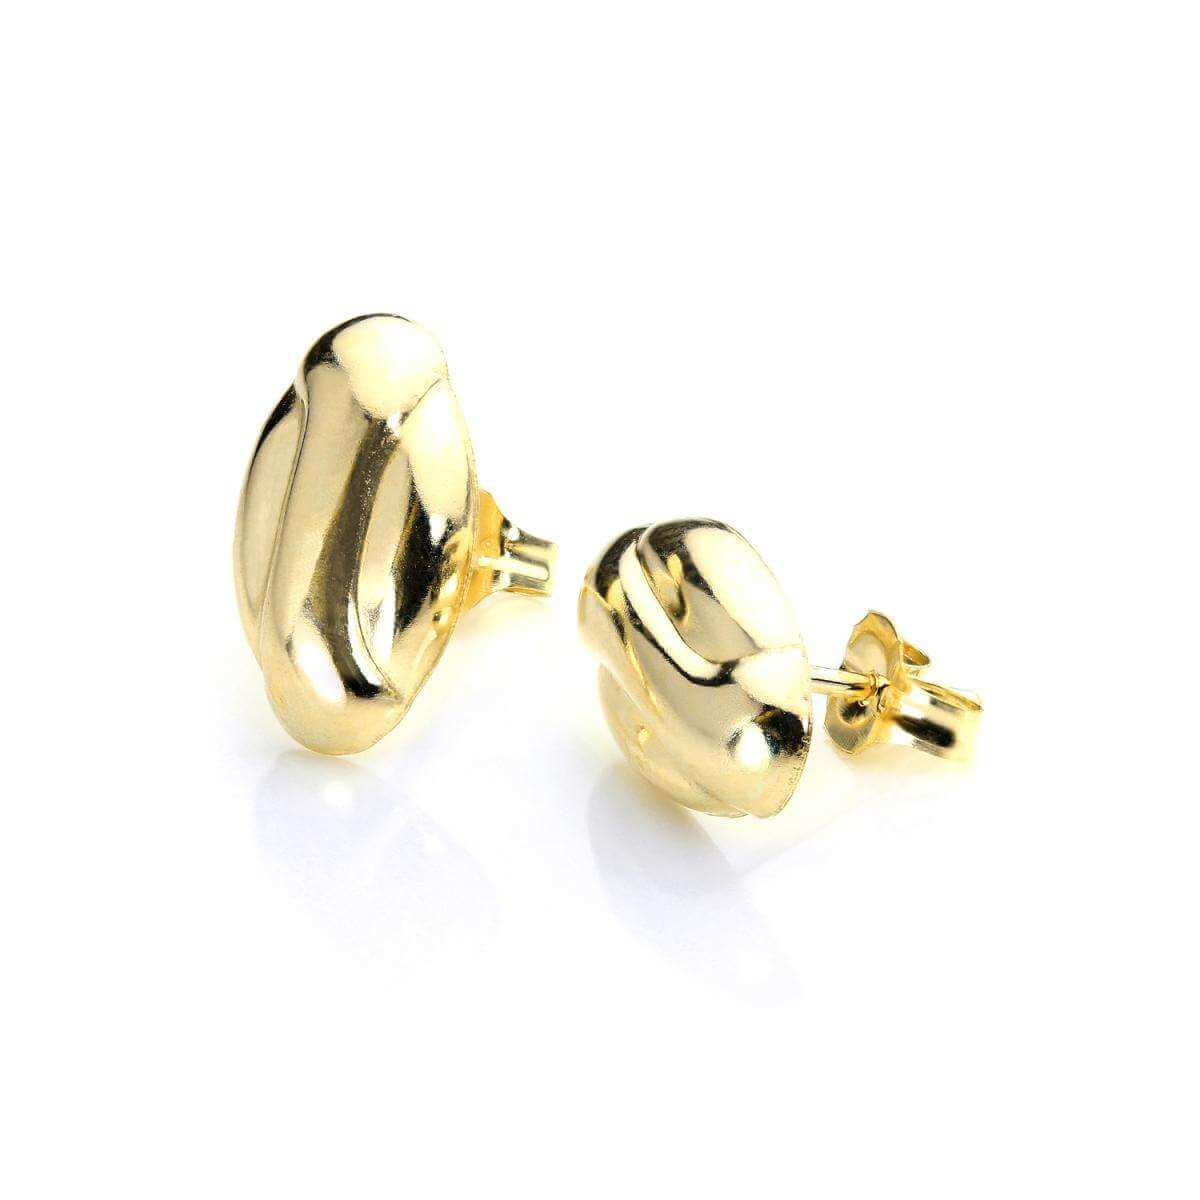 9ct Gold Coffee Bean Stud Earrings